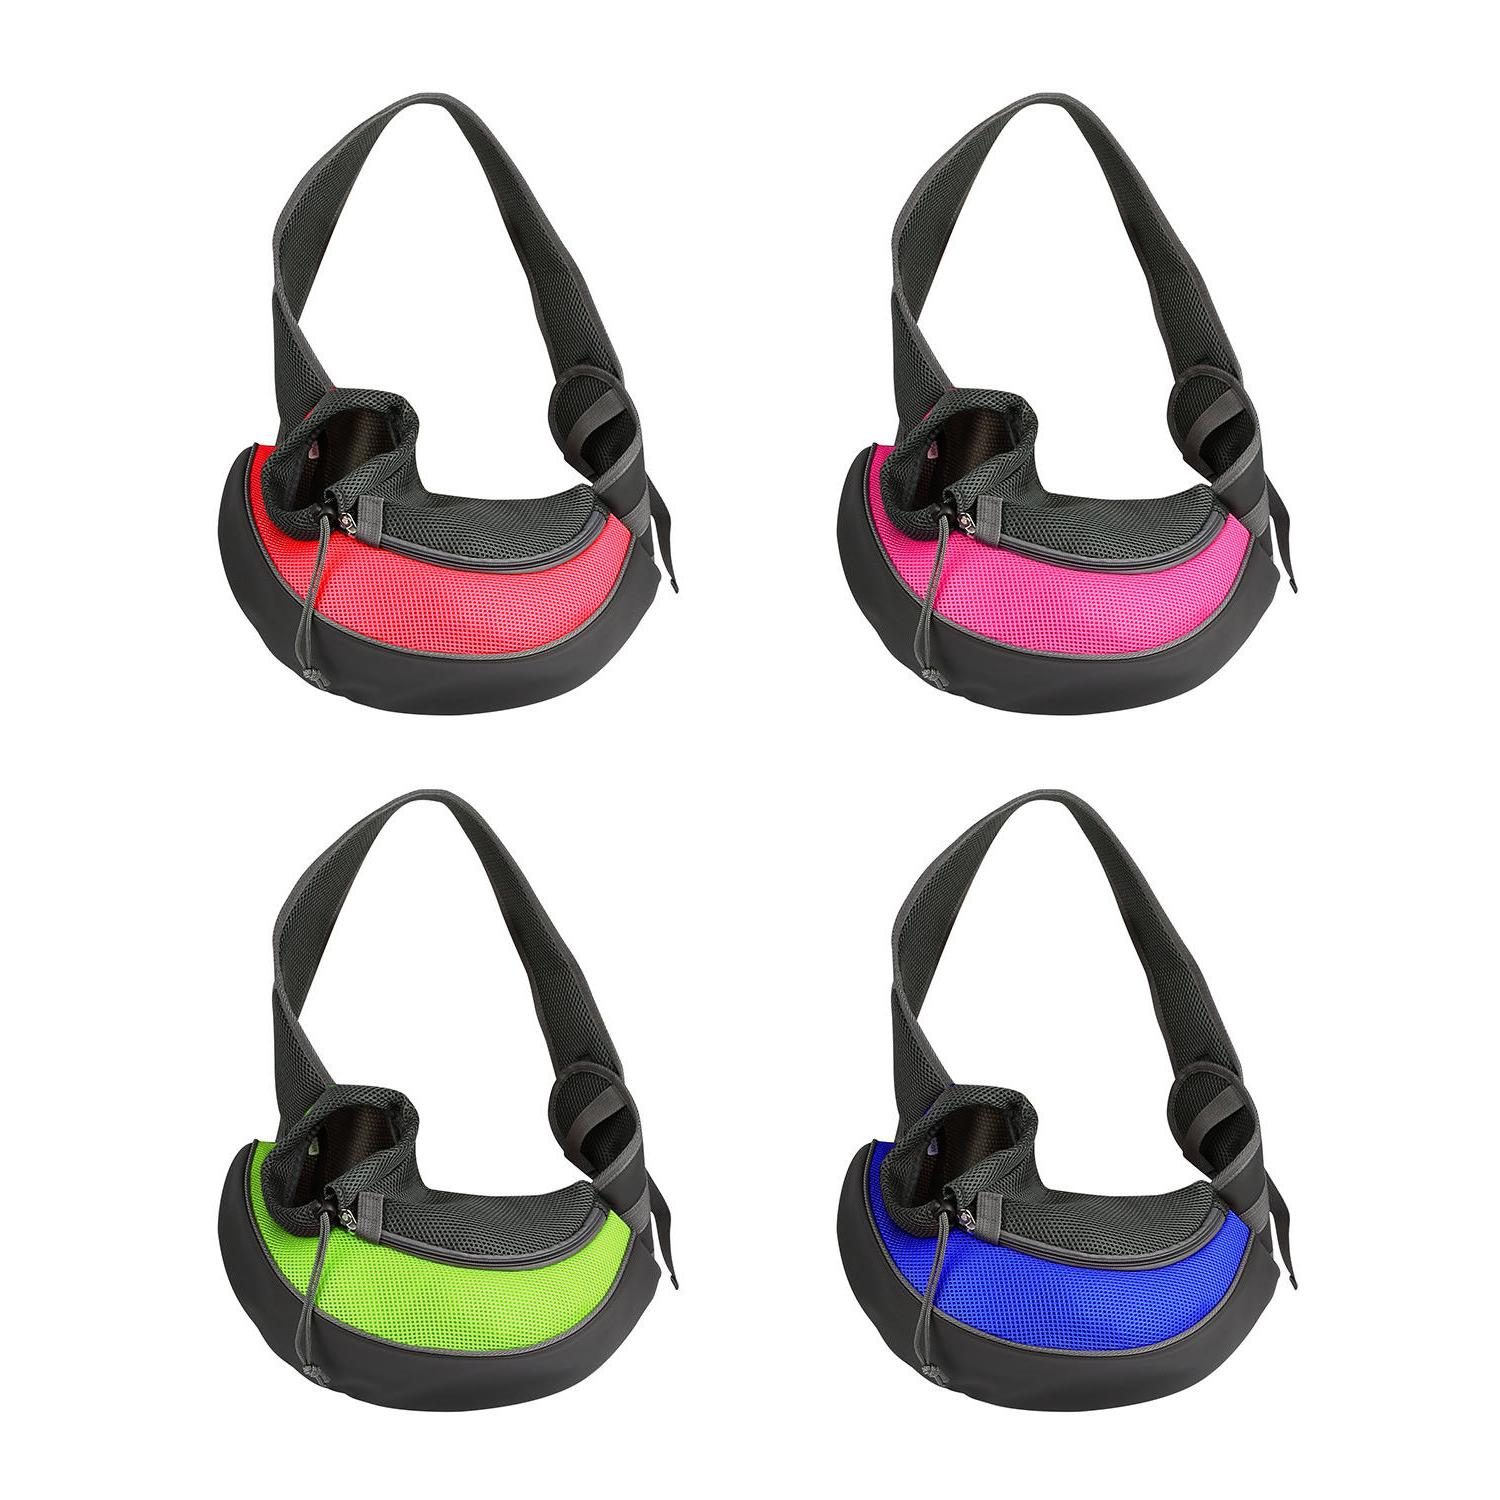 Pet Dog Carrier Comfort Tote Shoulder Bag Sling